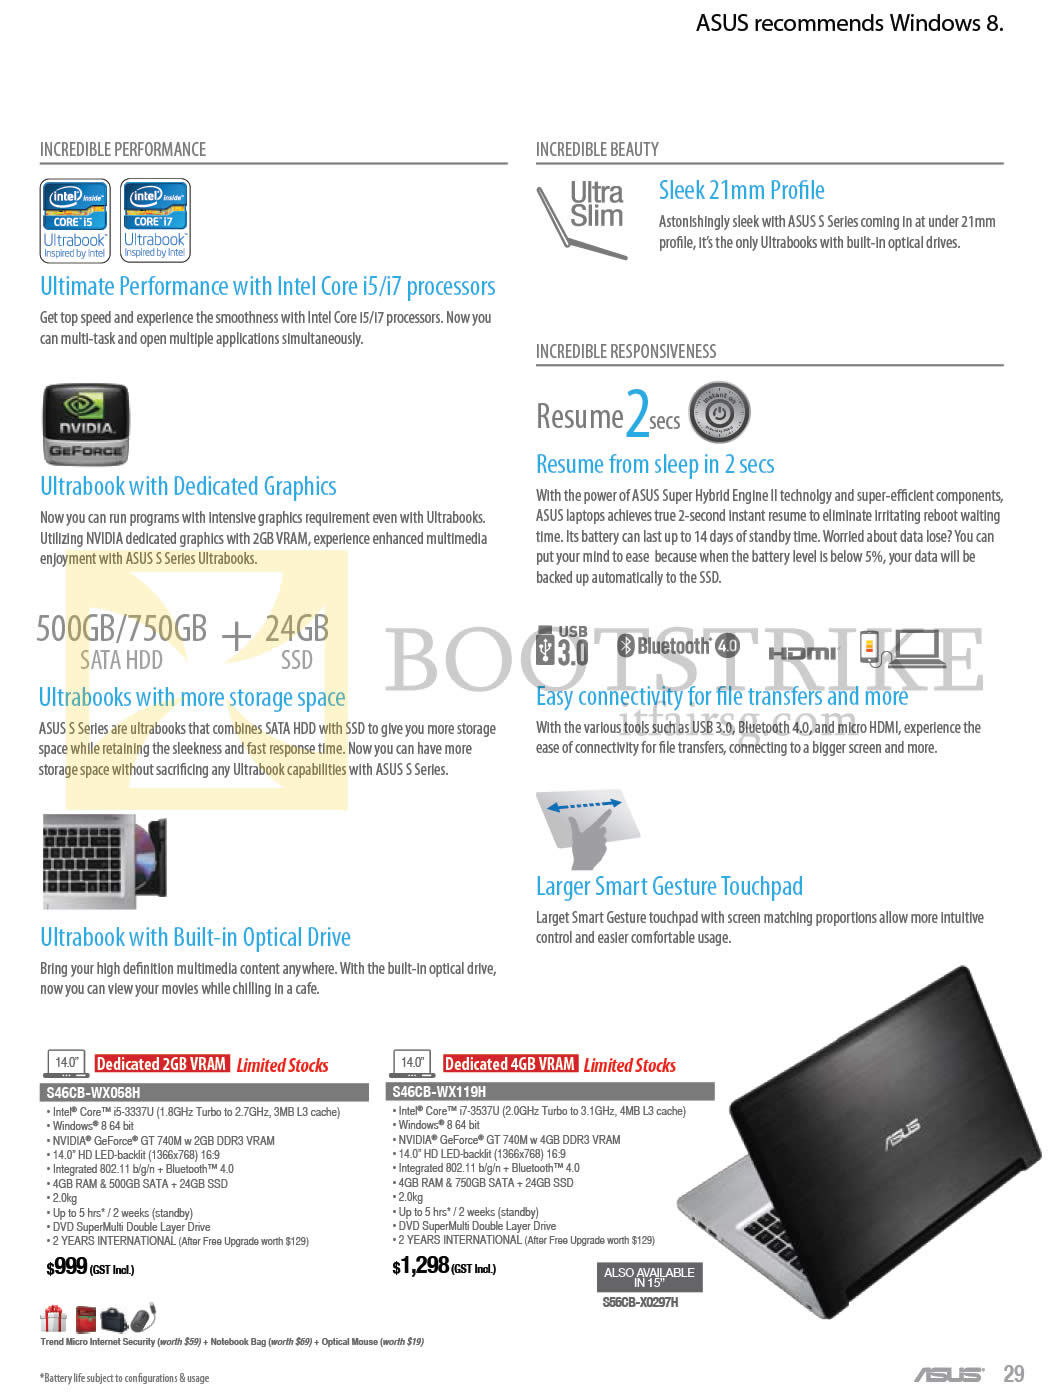 COMEX 2013 price list image brochure of ASUS Notebooks S Series S46CB-WX058H, S46CB-WX119H